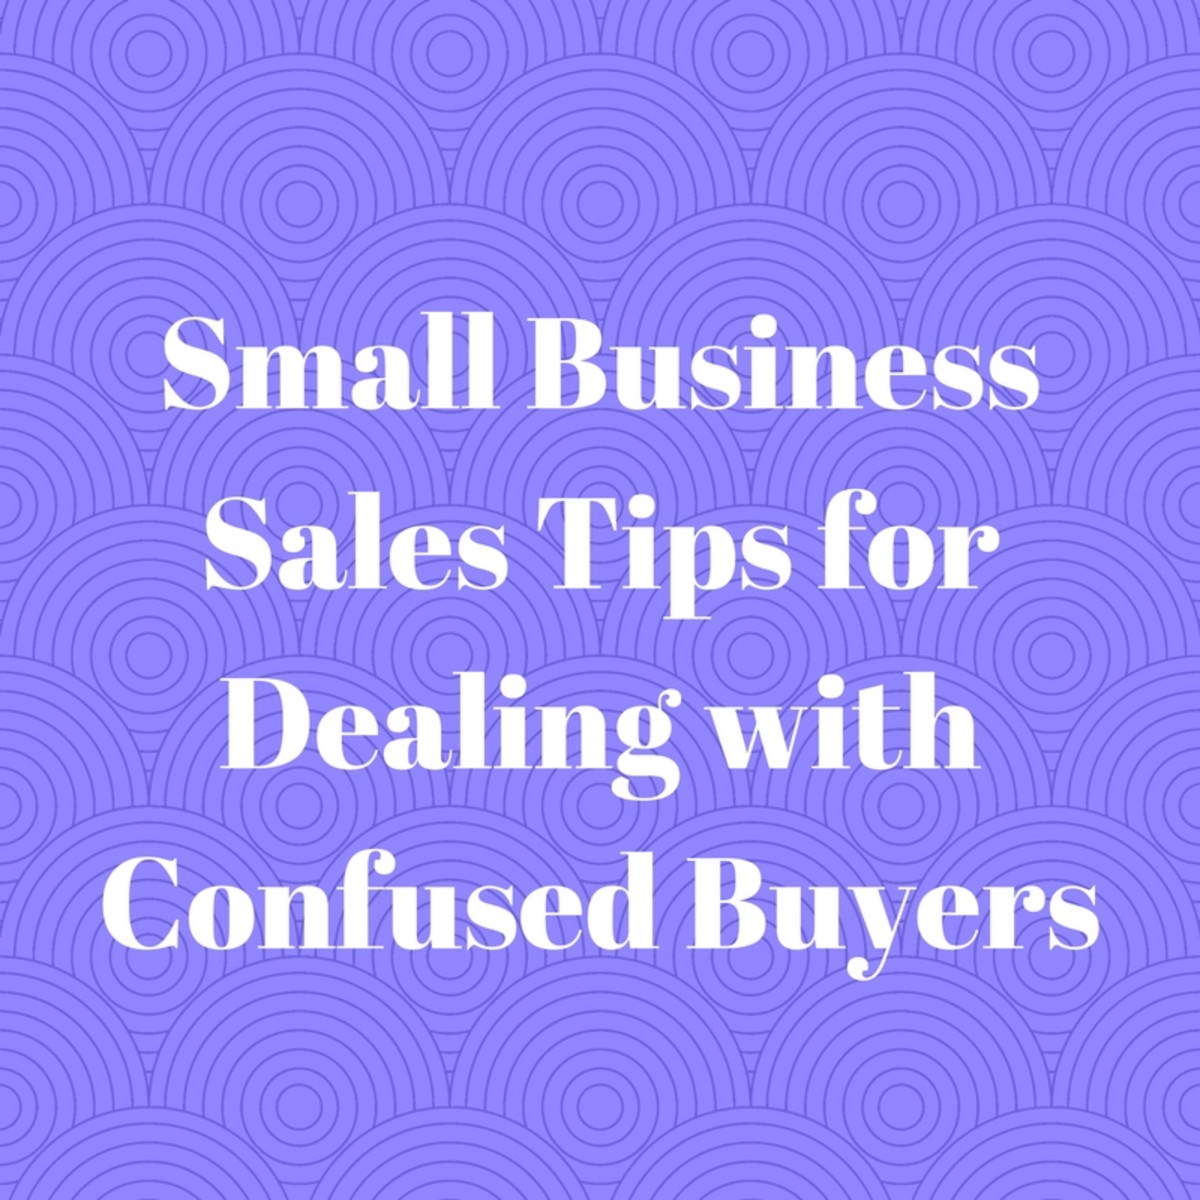 Small Business Sales Tips for Dealing With Confused Buyers